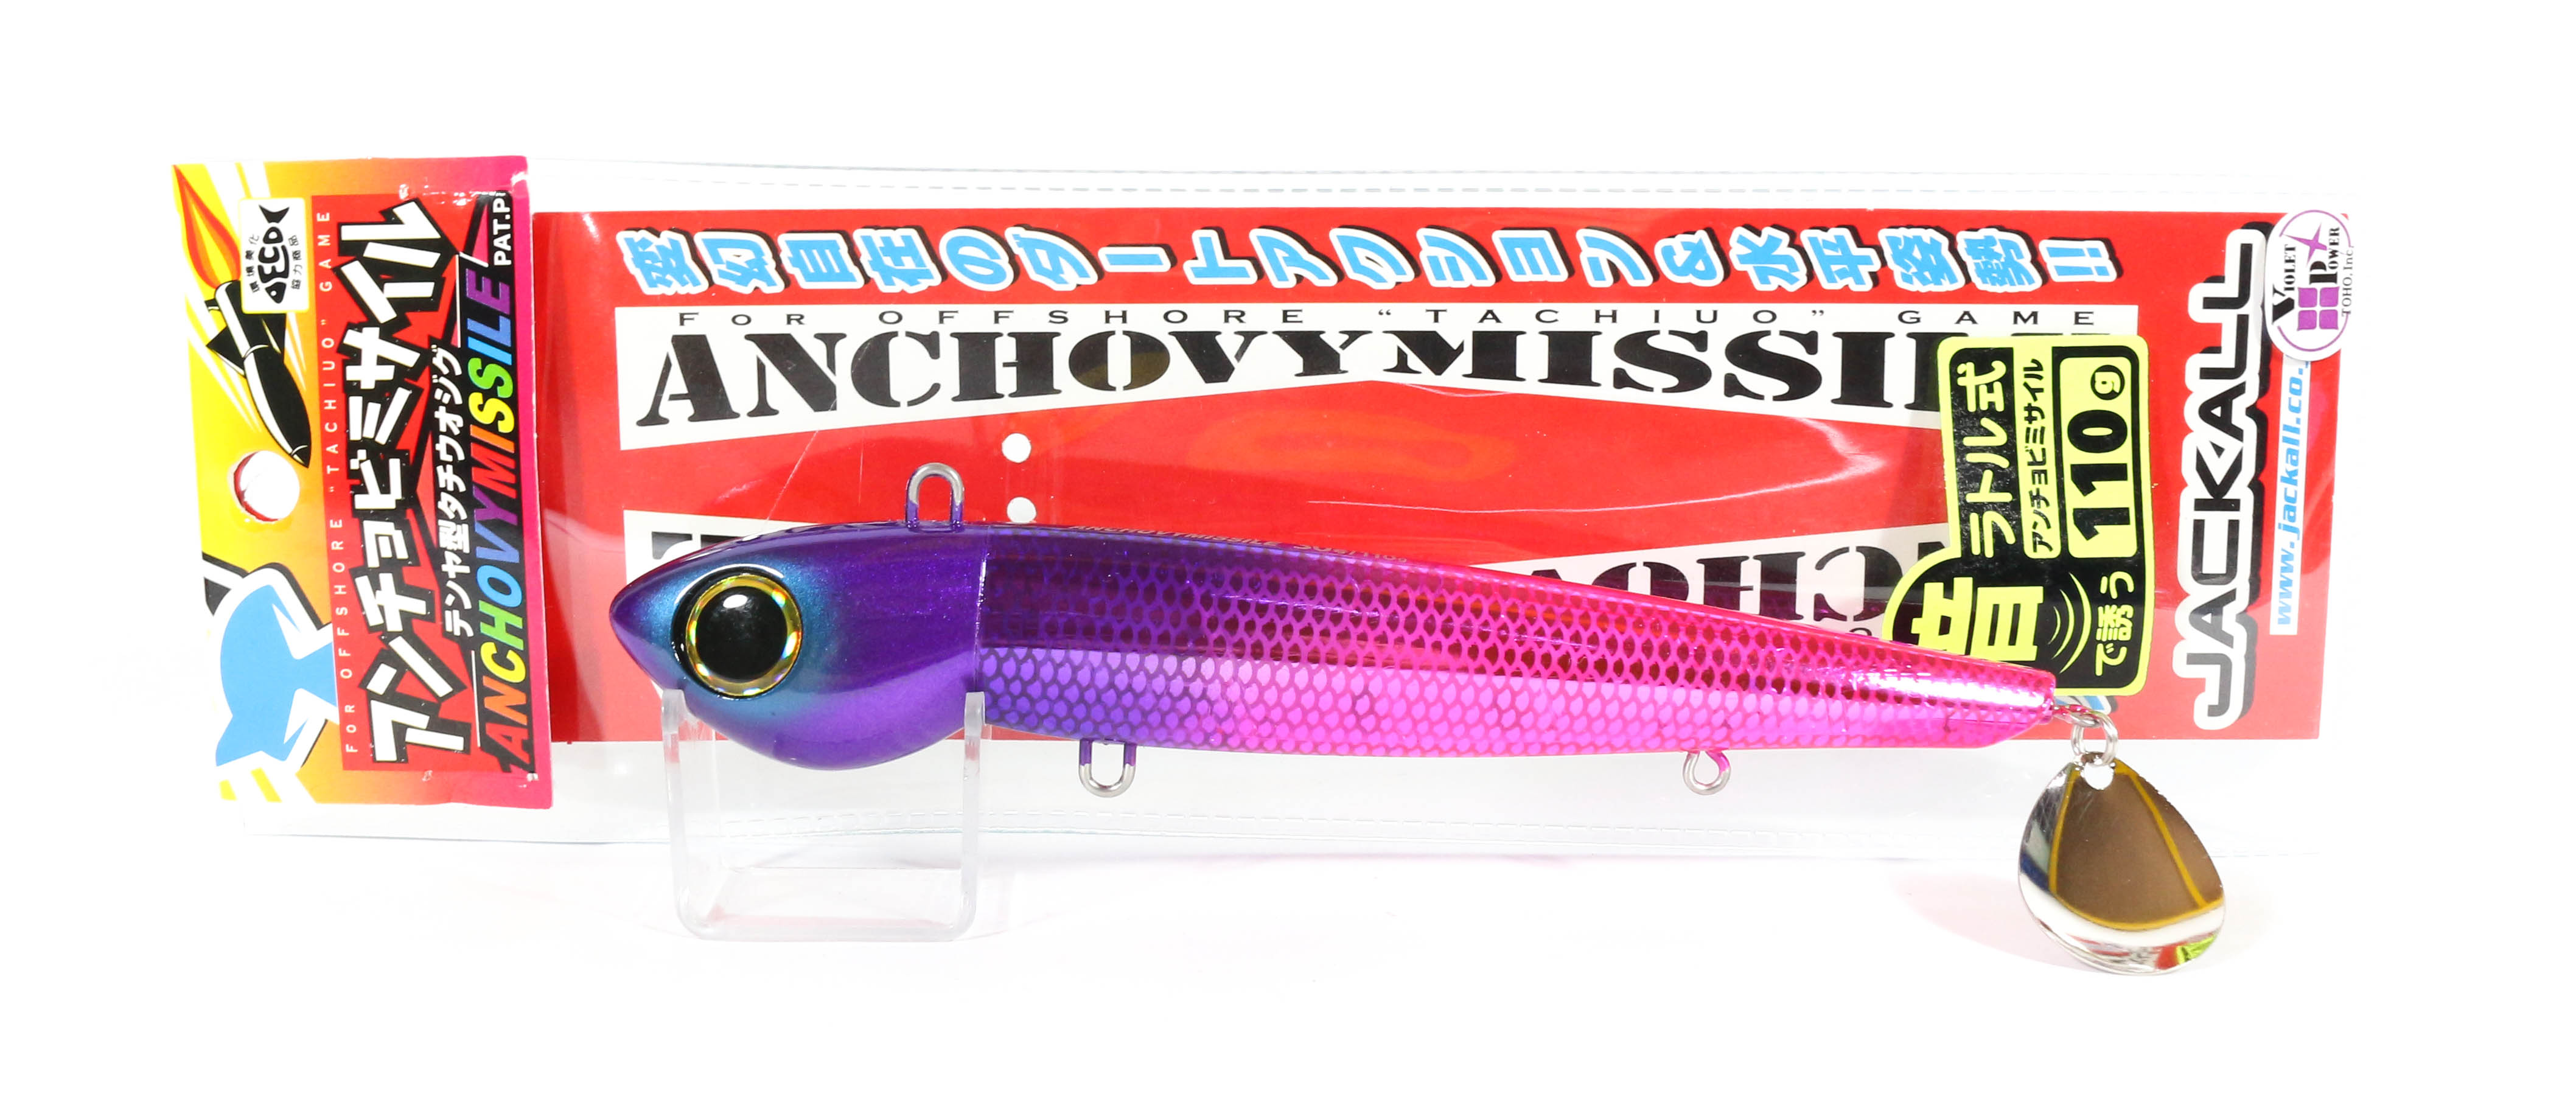 Jackall Anchovy Missile RattleShiki Jig Lure 150 grams Purple Pink (5306)